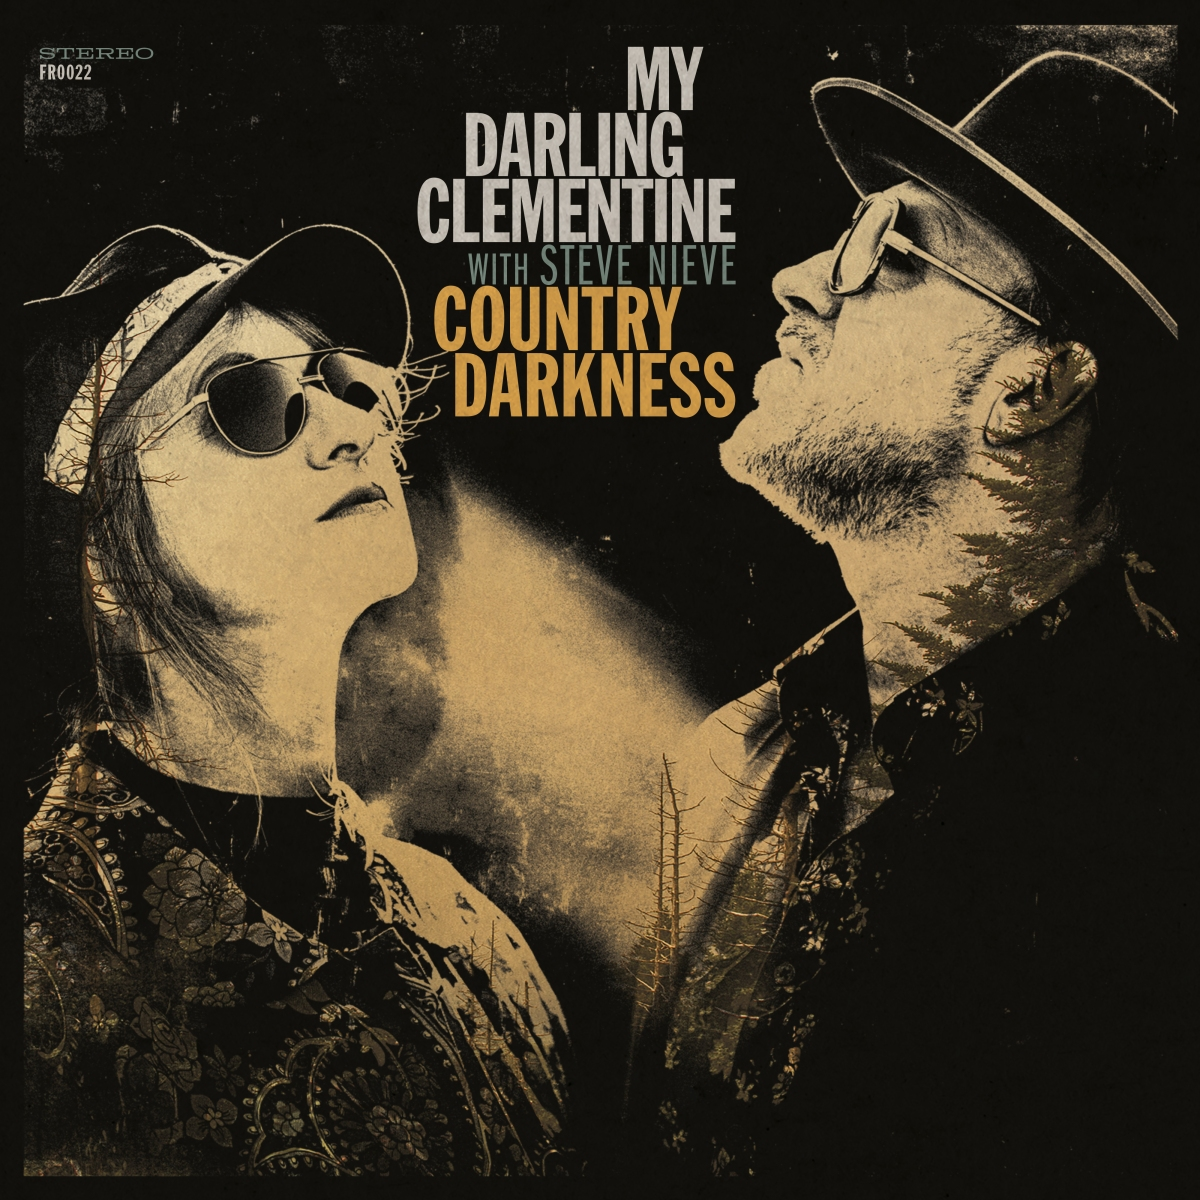 My Darling Clementine's CountryDarkness